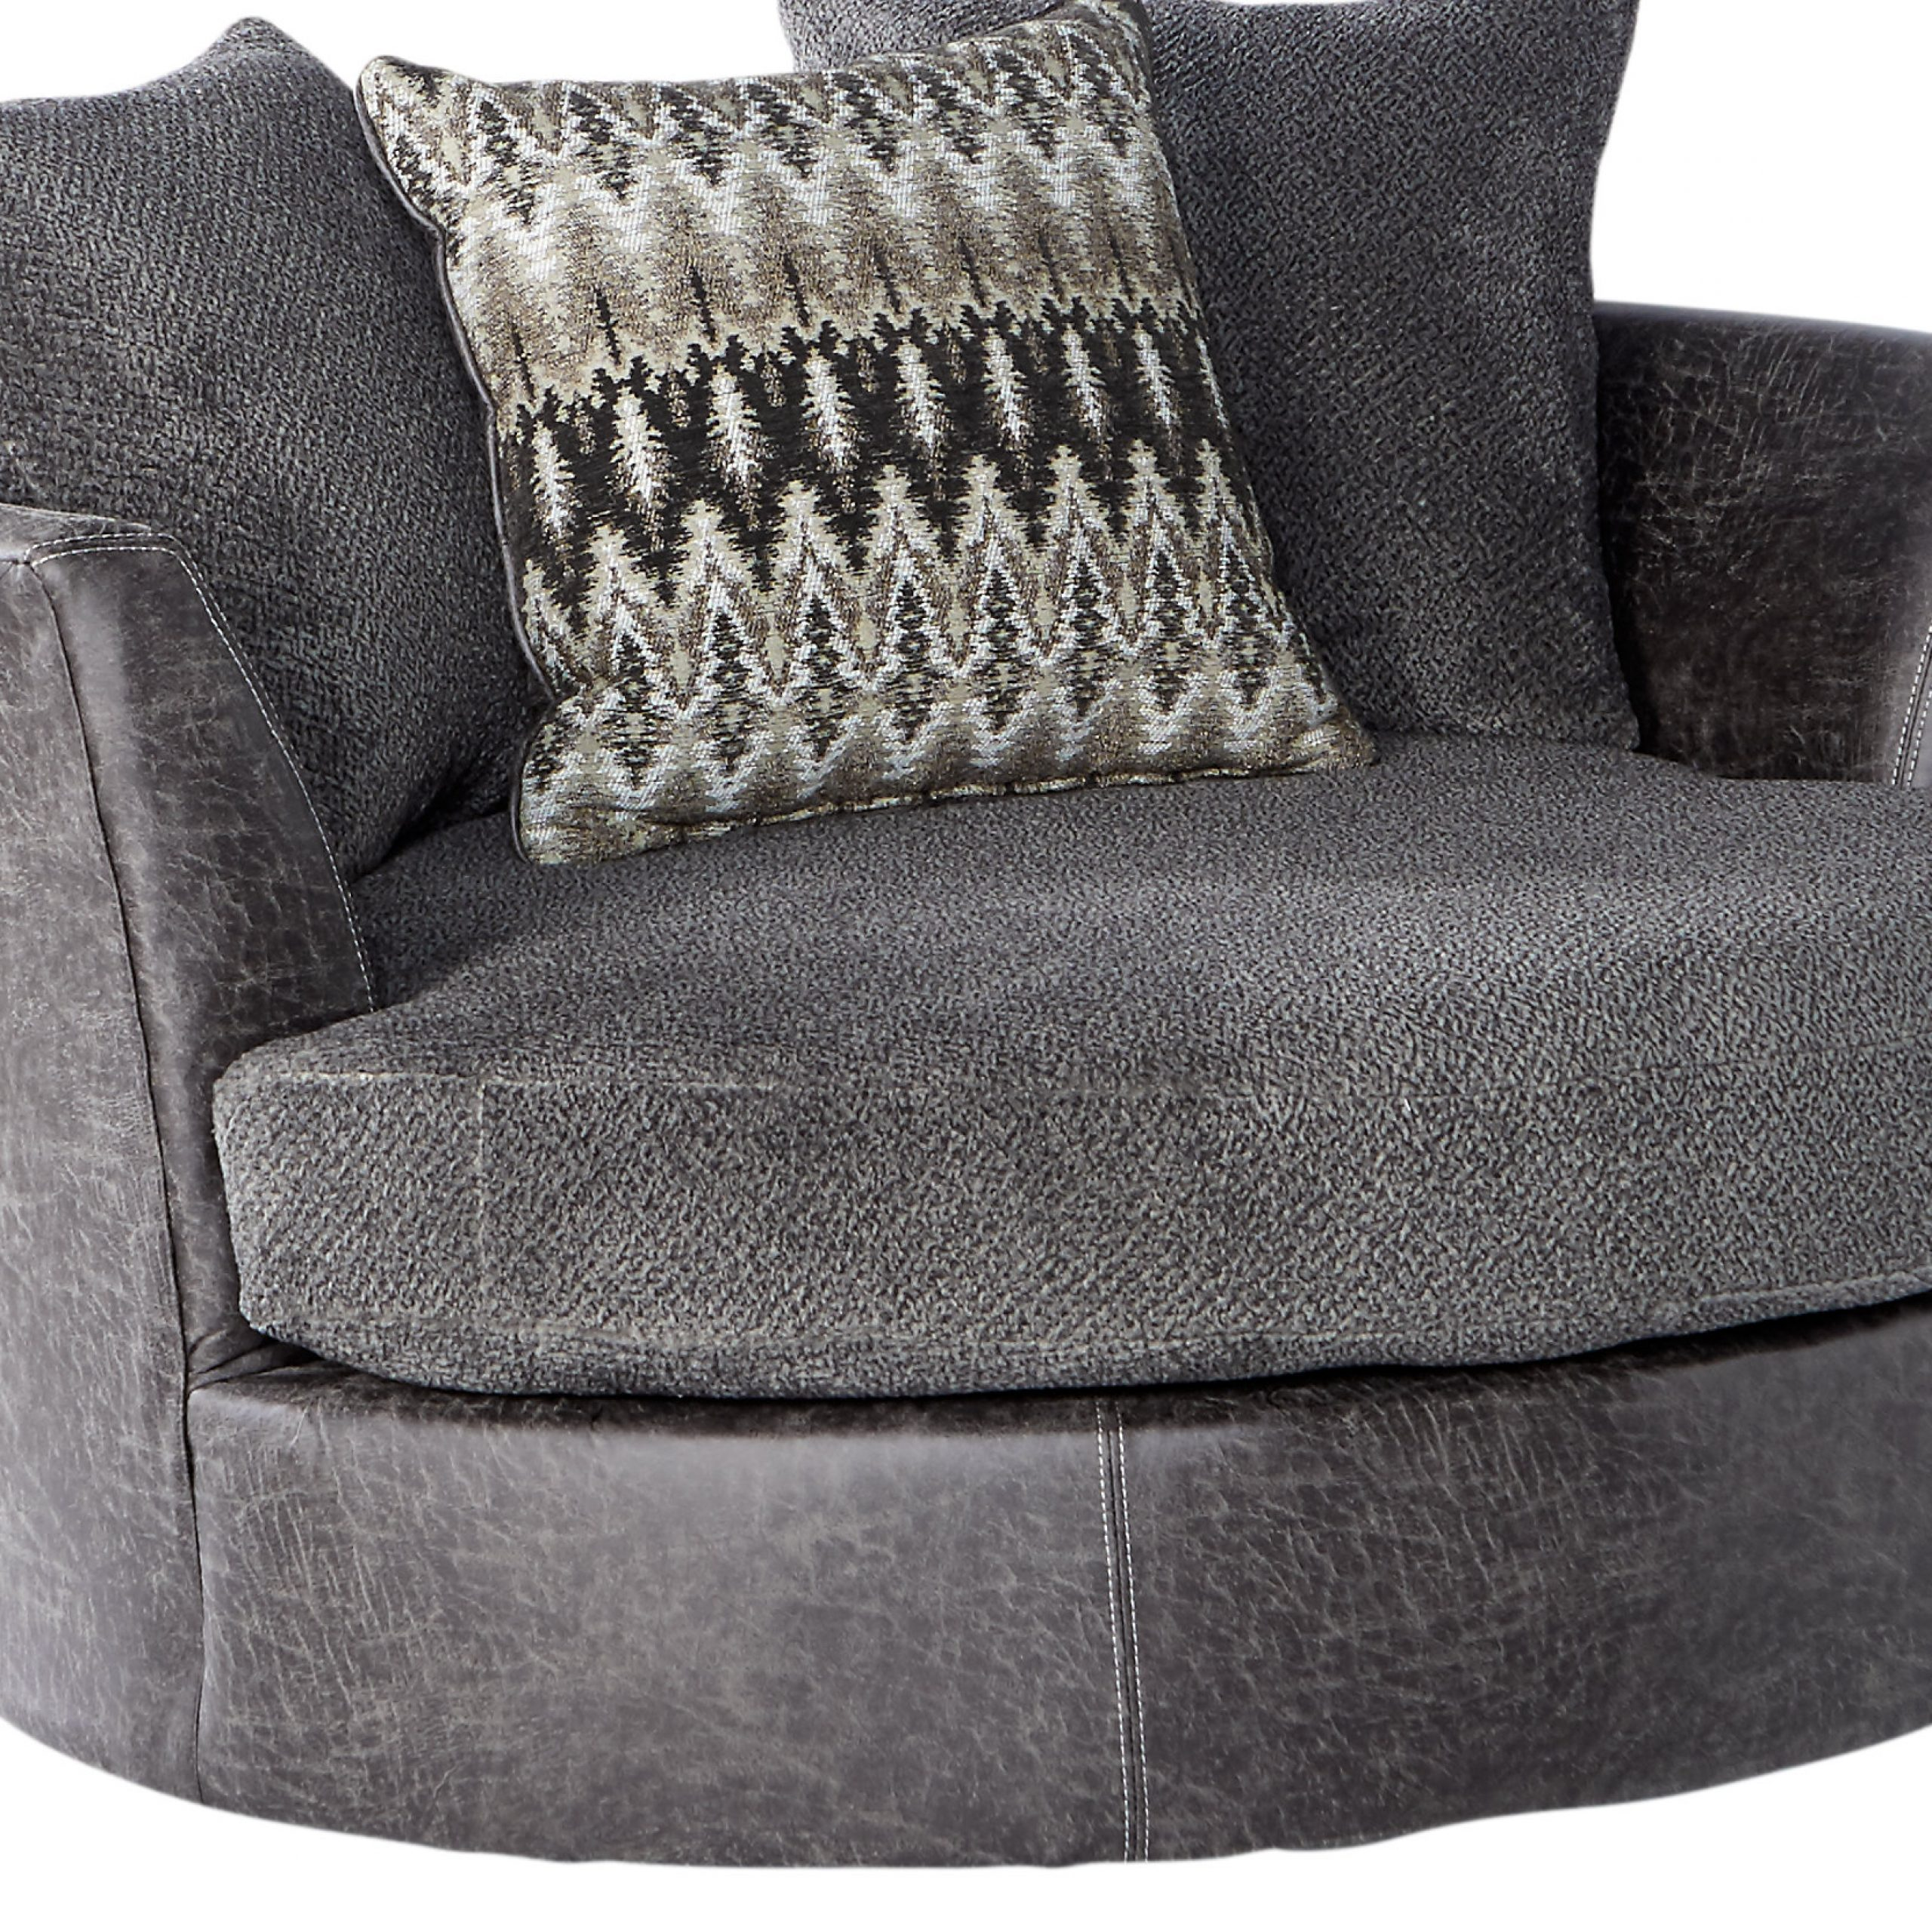 Circular Sofa Chair Fabulous Round Sofa Chair Living Room With Round Swivel Sofa Chairs (View 9 of 15)